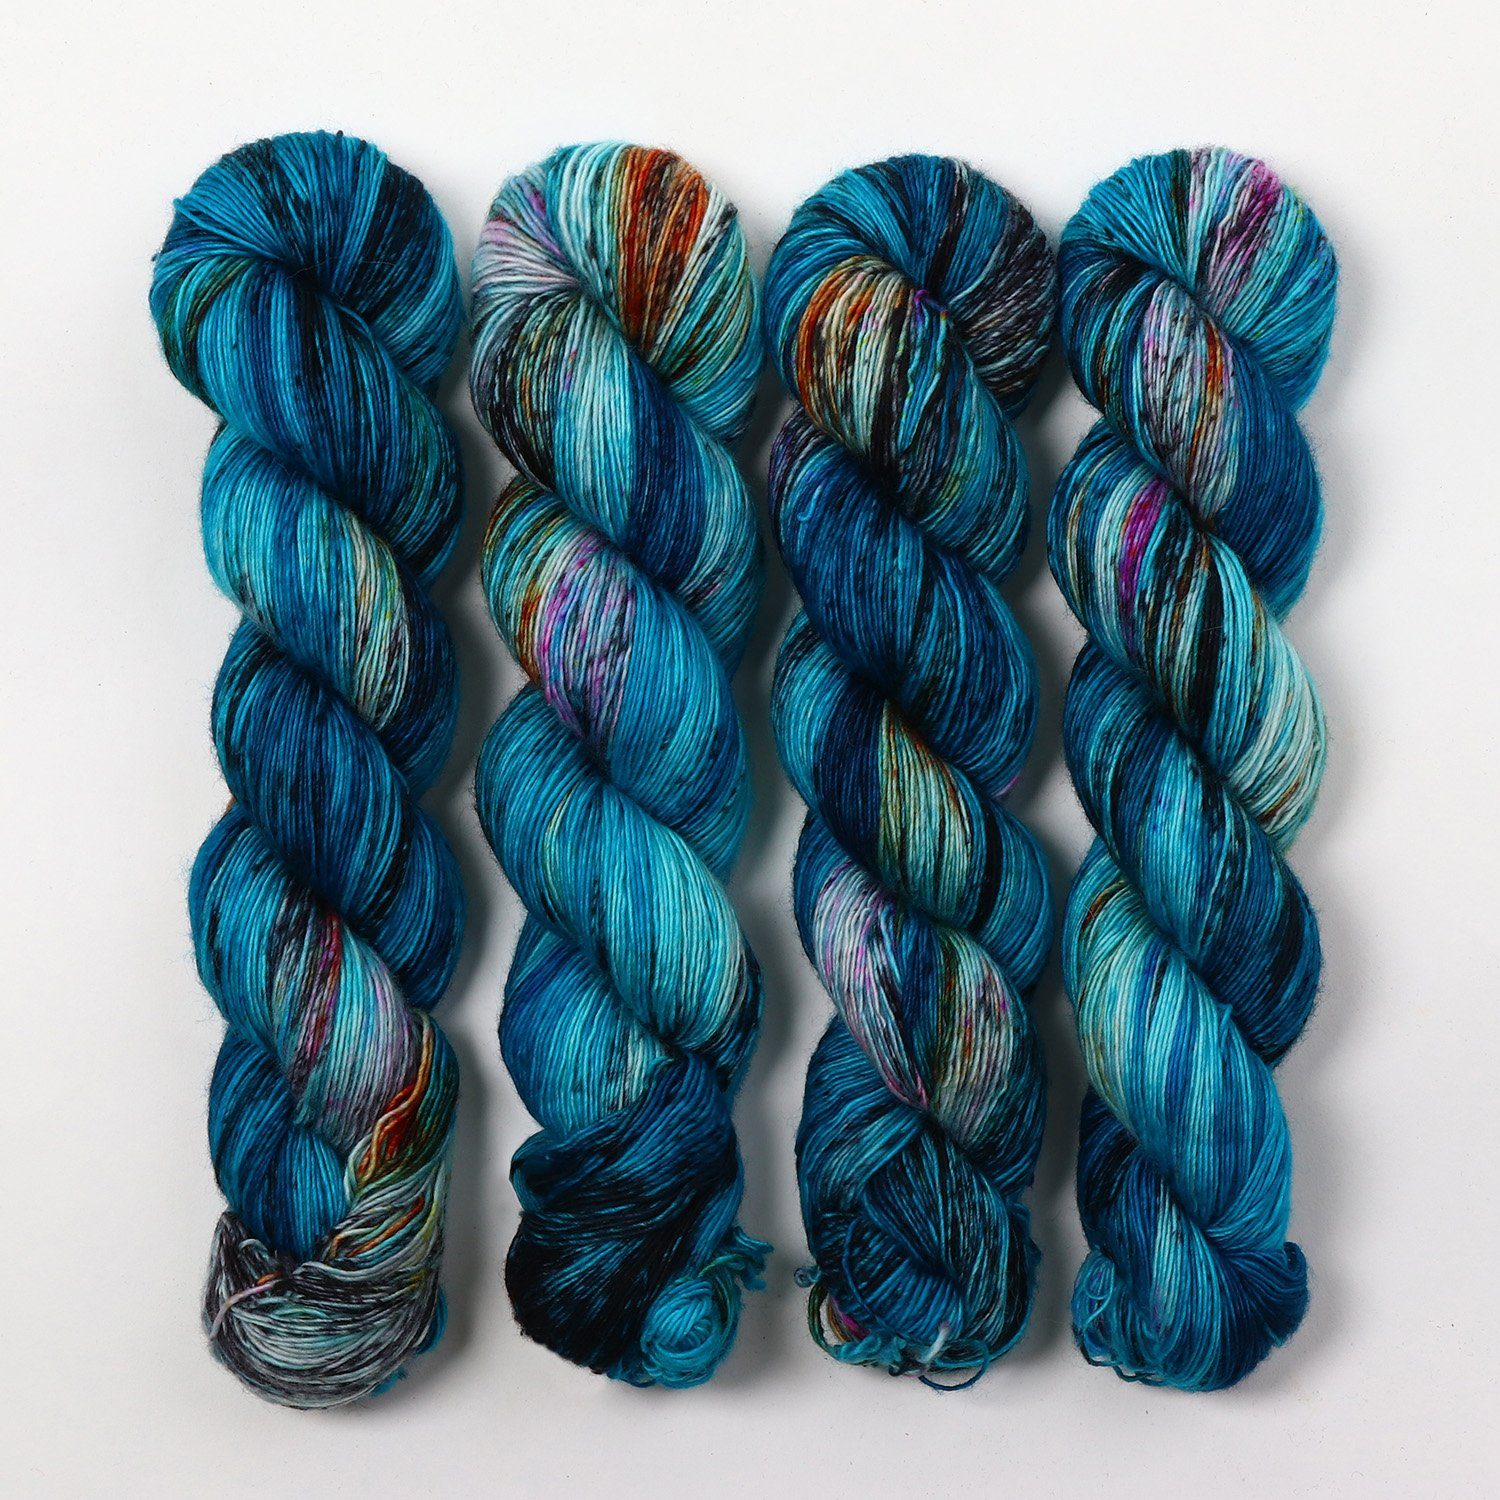 Simply Socks Yarn Co. Blog: Just some new Hedgehog Fibres colors ...